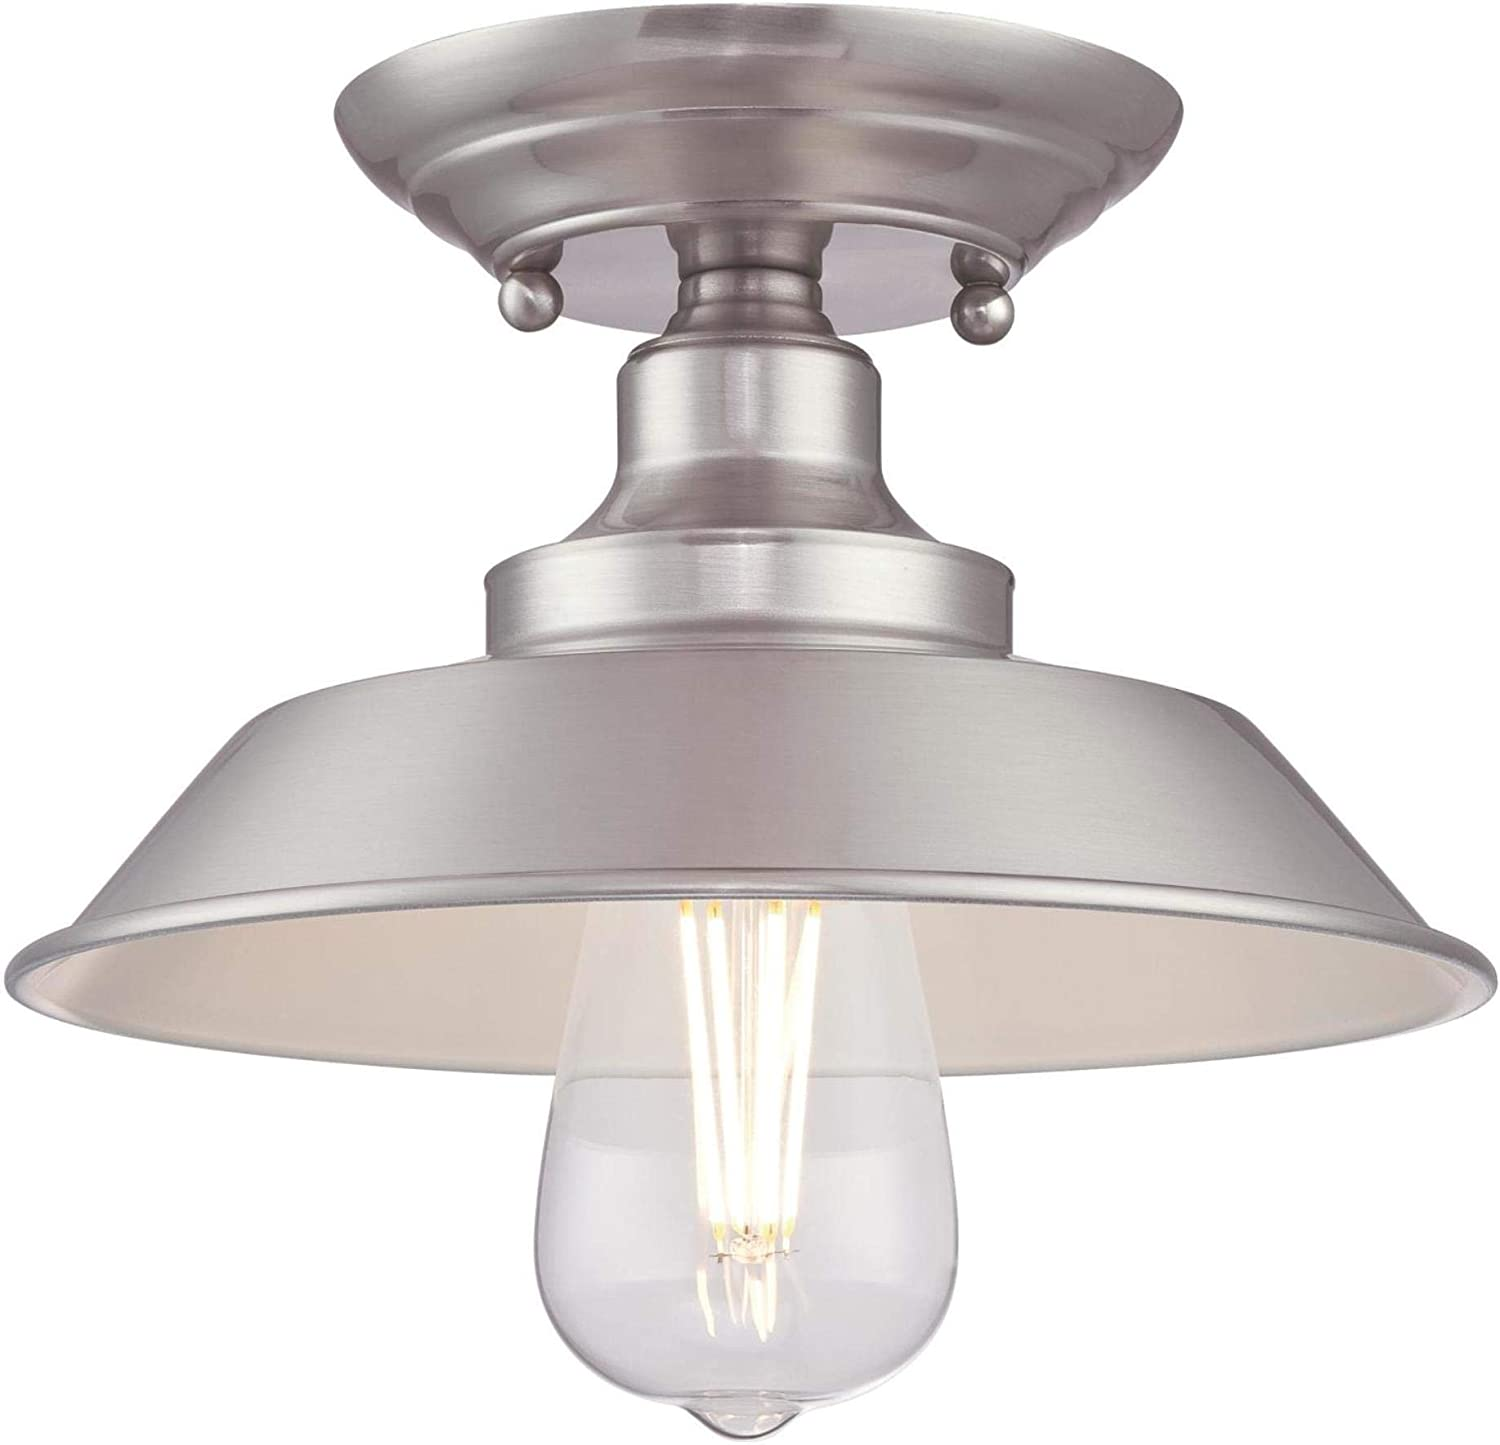 Westinghouse Lighting 6370000 Iron Hill 9-Inch, One-Light Indoor Semi Flush Mount Ceiling Light, Brushed Nickel Finish